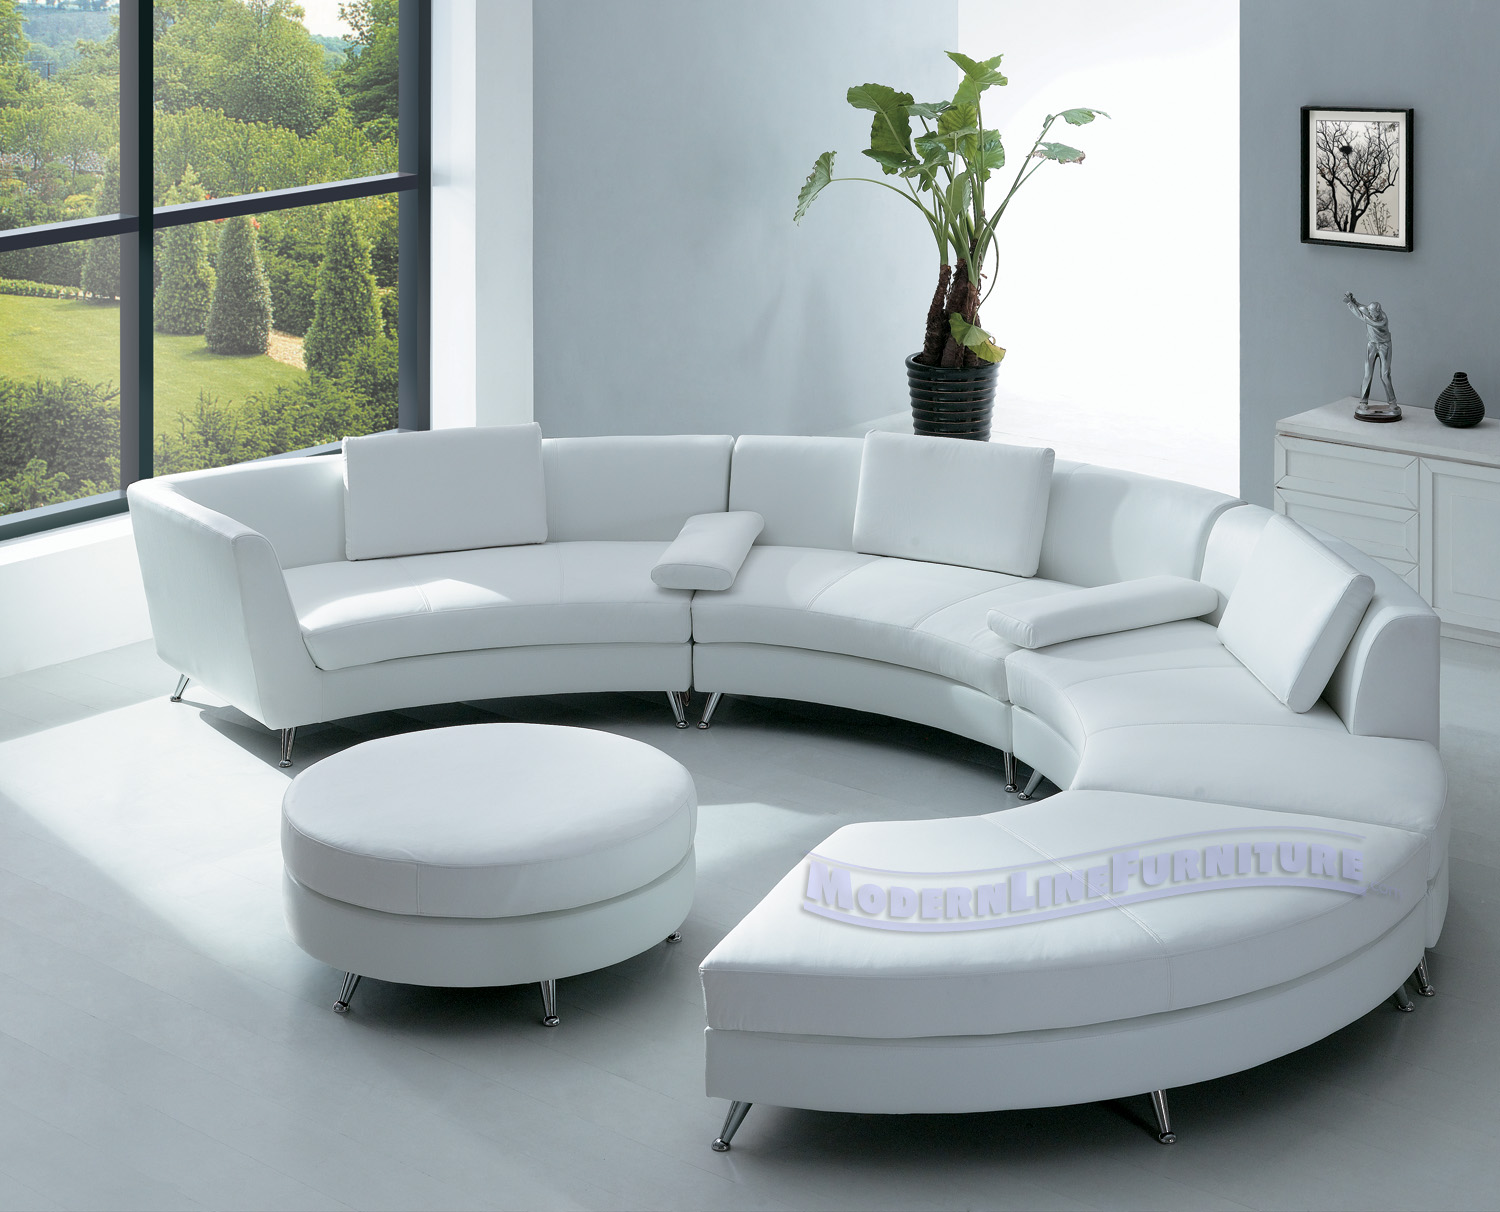 elegance of living sofa sets designs. Black Bedroom Furniture Sets. Home Design Ideas